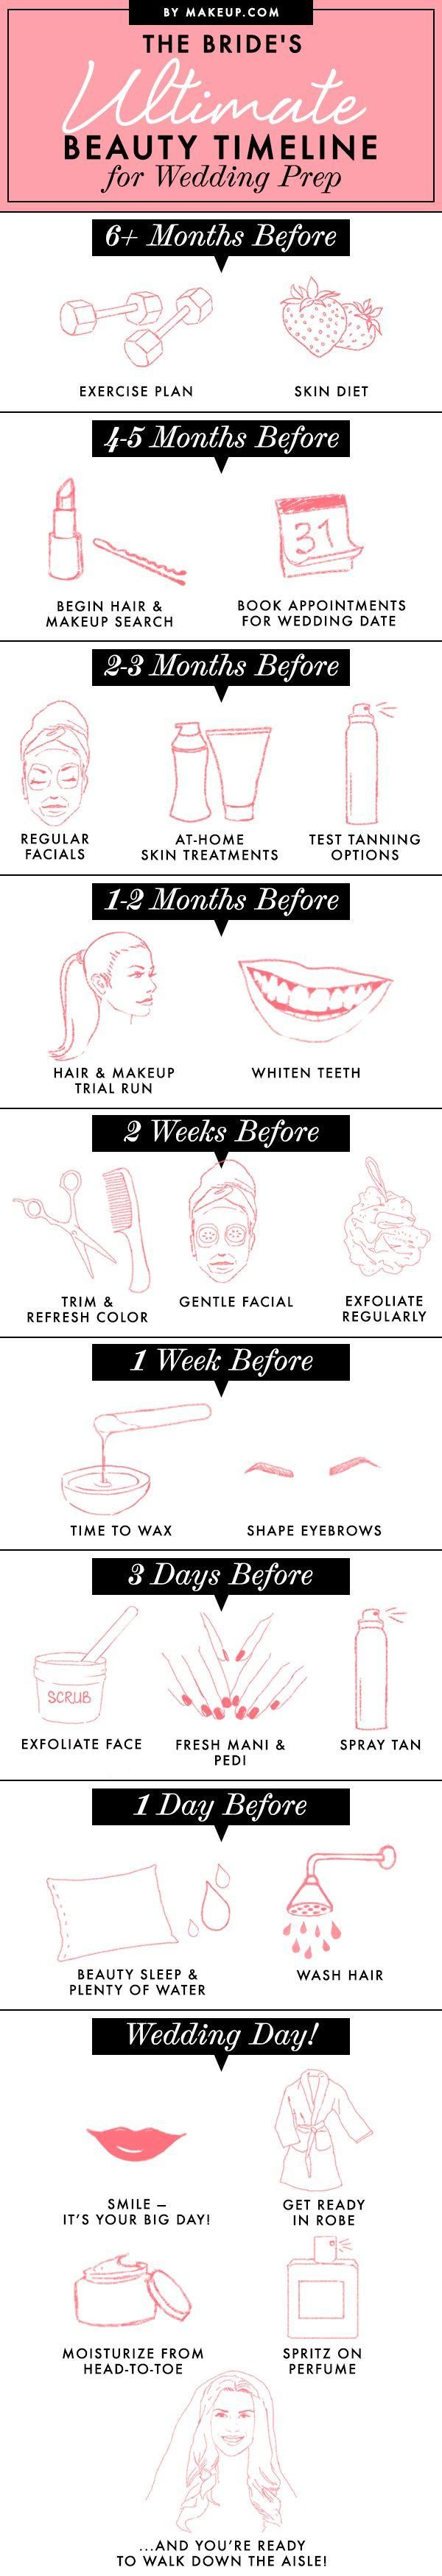 Brides, check out this ultimate beauty timeline.